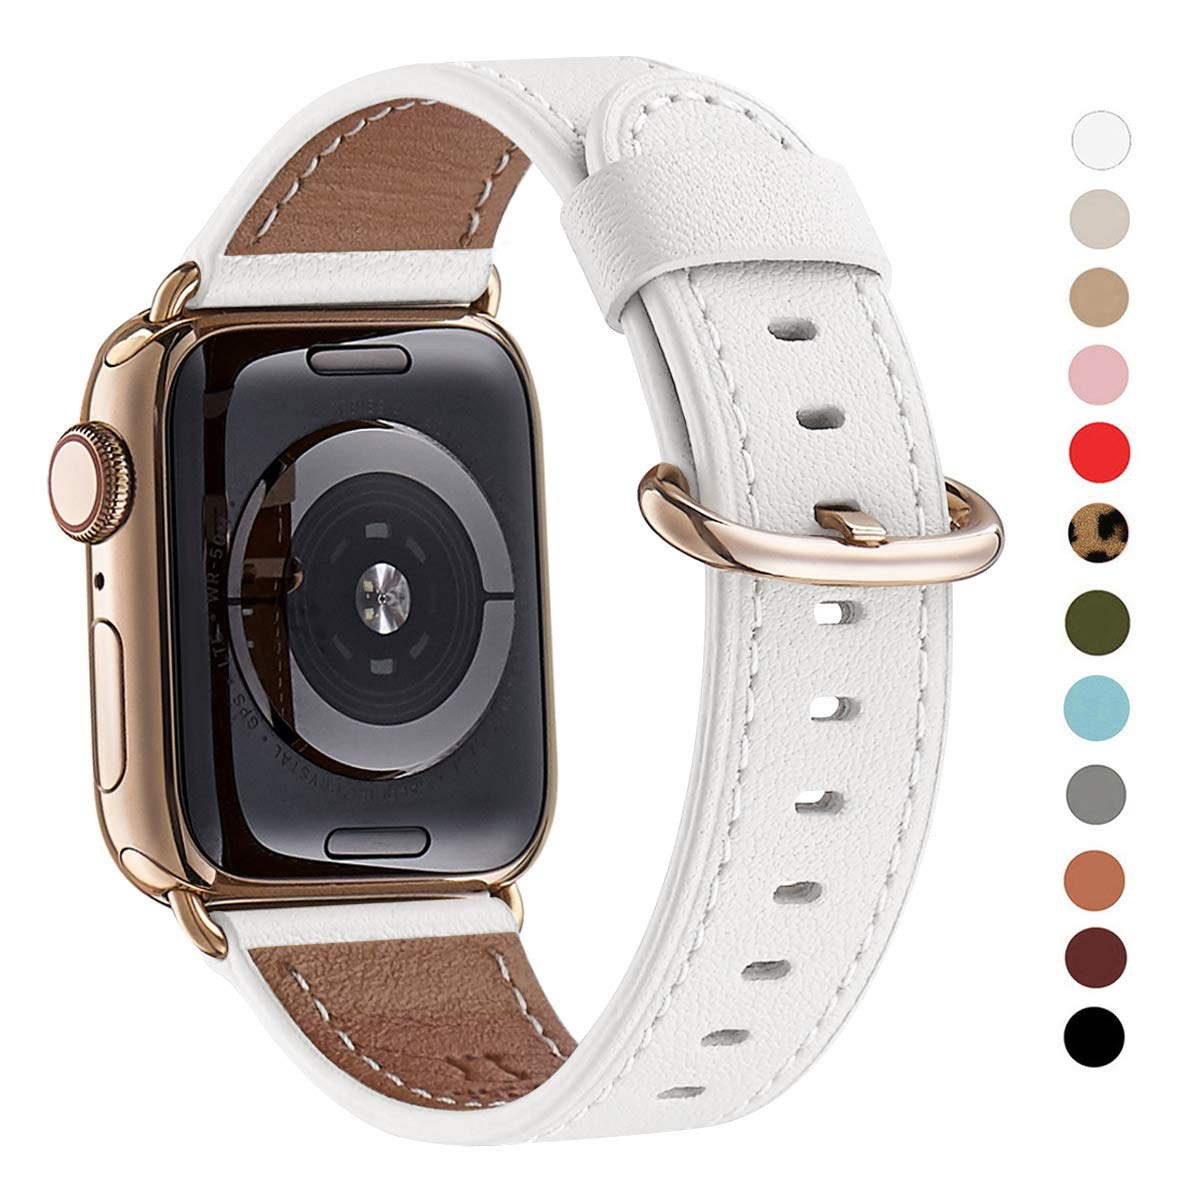 WFEAGL Compatible iWatch Band 44mm 42mm, Top Grain Leather Band with Gold Adapter (the Same as Series 5/4 with Gold Stainless Steel Case in Color)for iWatch Series 5 /4/3/2/1 (White Band+Gold Adapter)